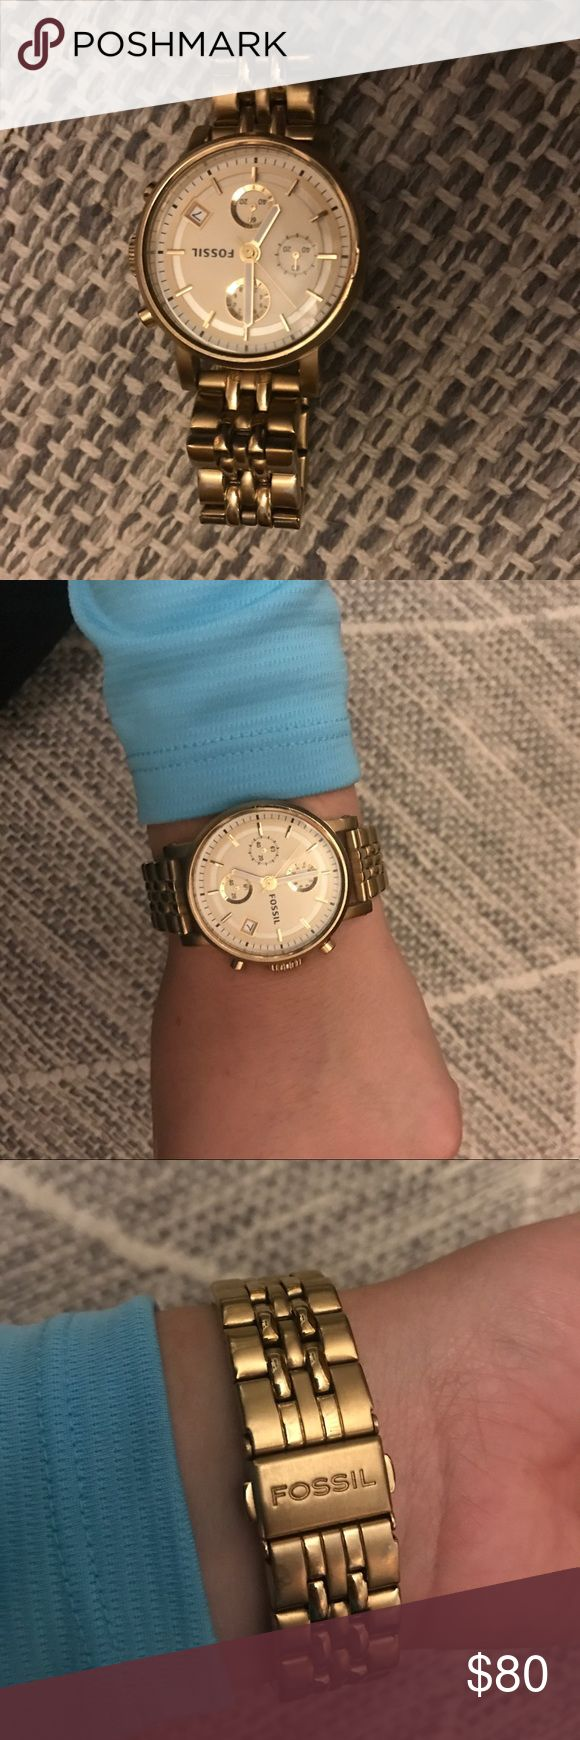 Gold-Tone Fossil Chronograph Watch Boyfriend fit gold tone watch from fossil. In good gently used condition- minor scuffs on inner wrist band. Works like new! Fossil Accessories Watches